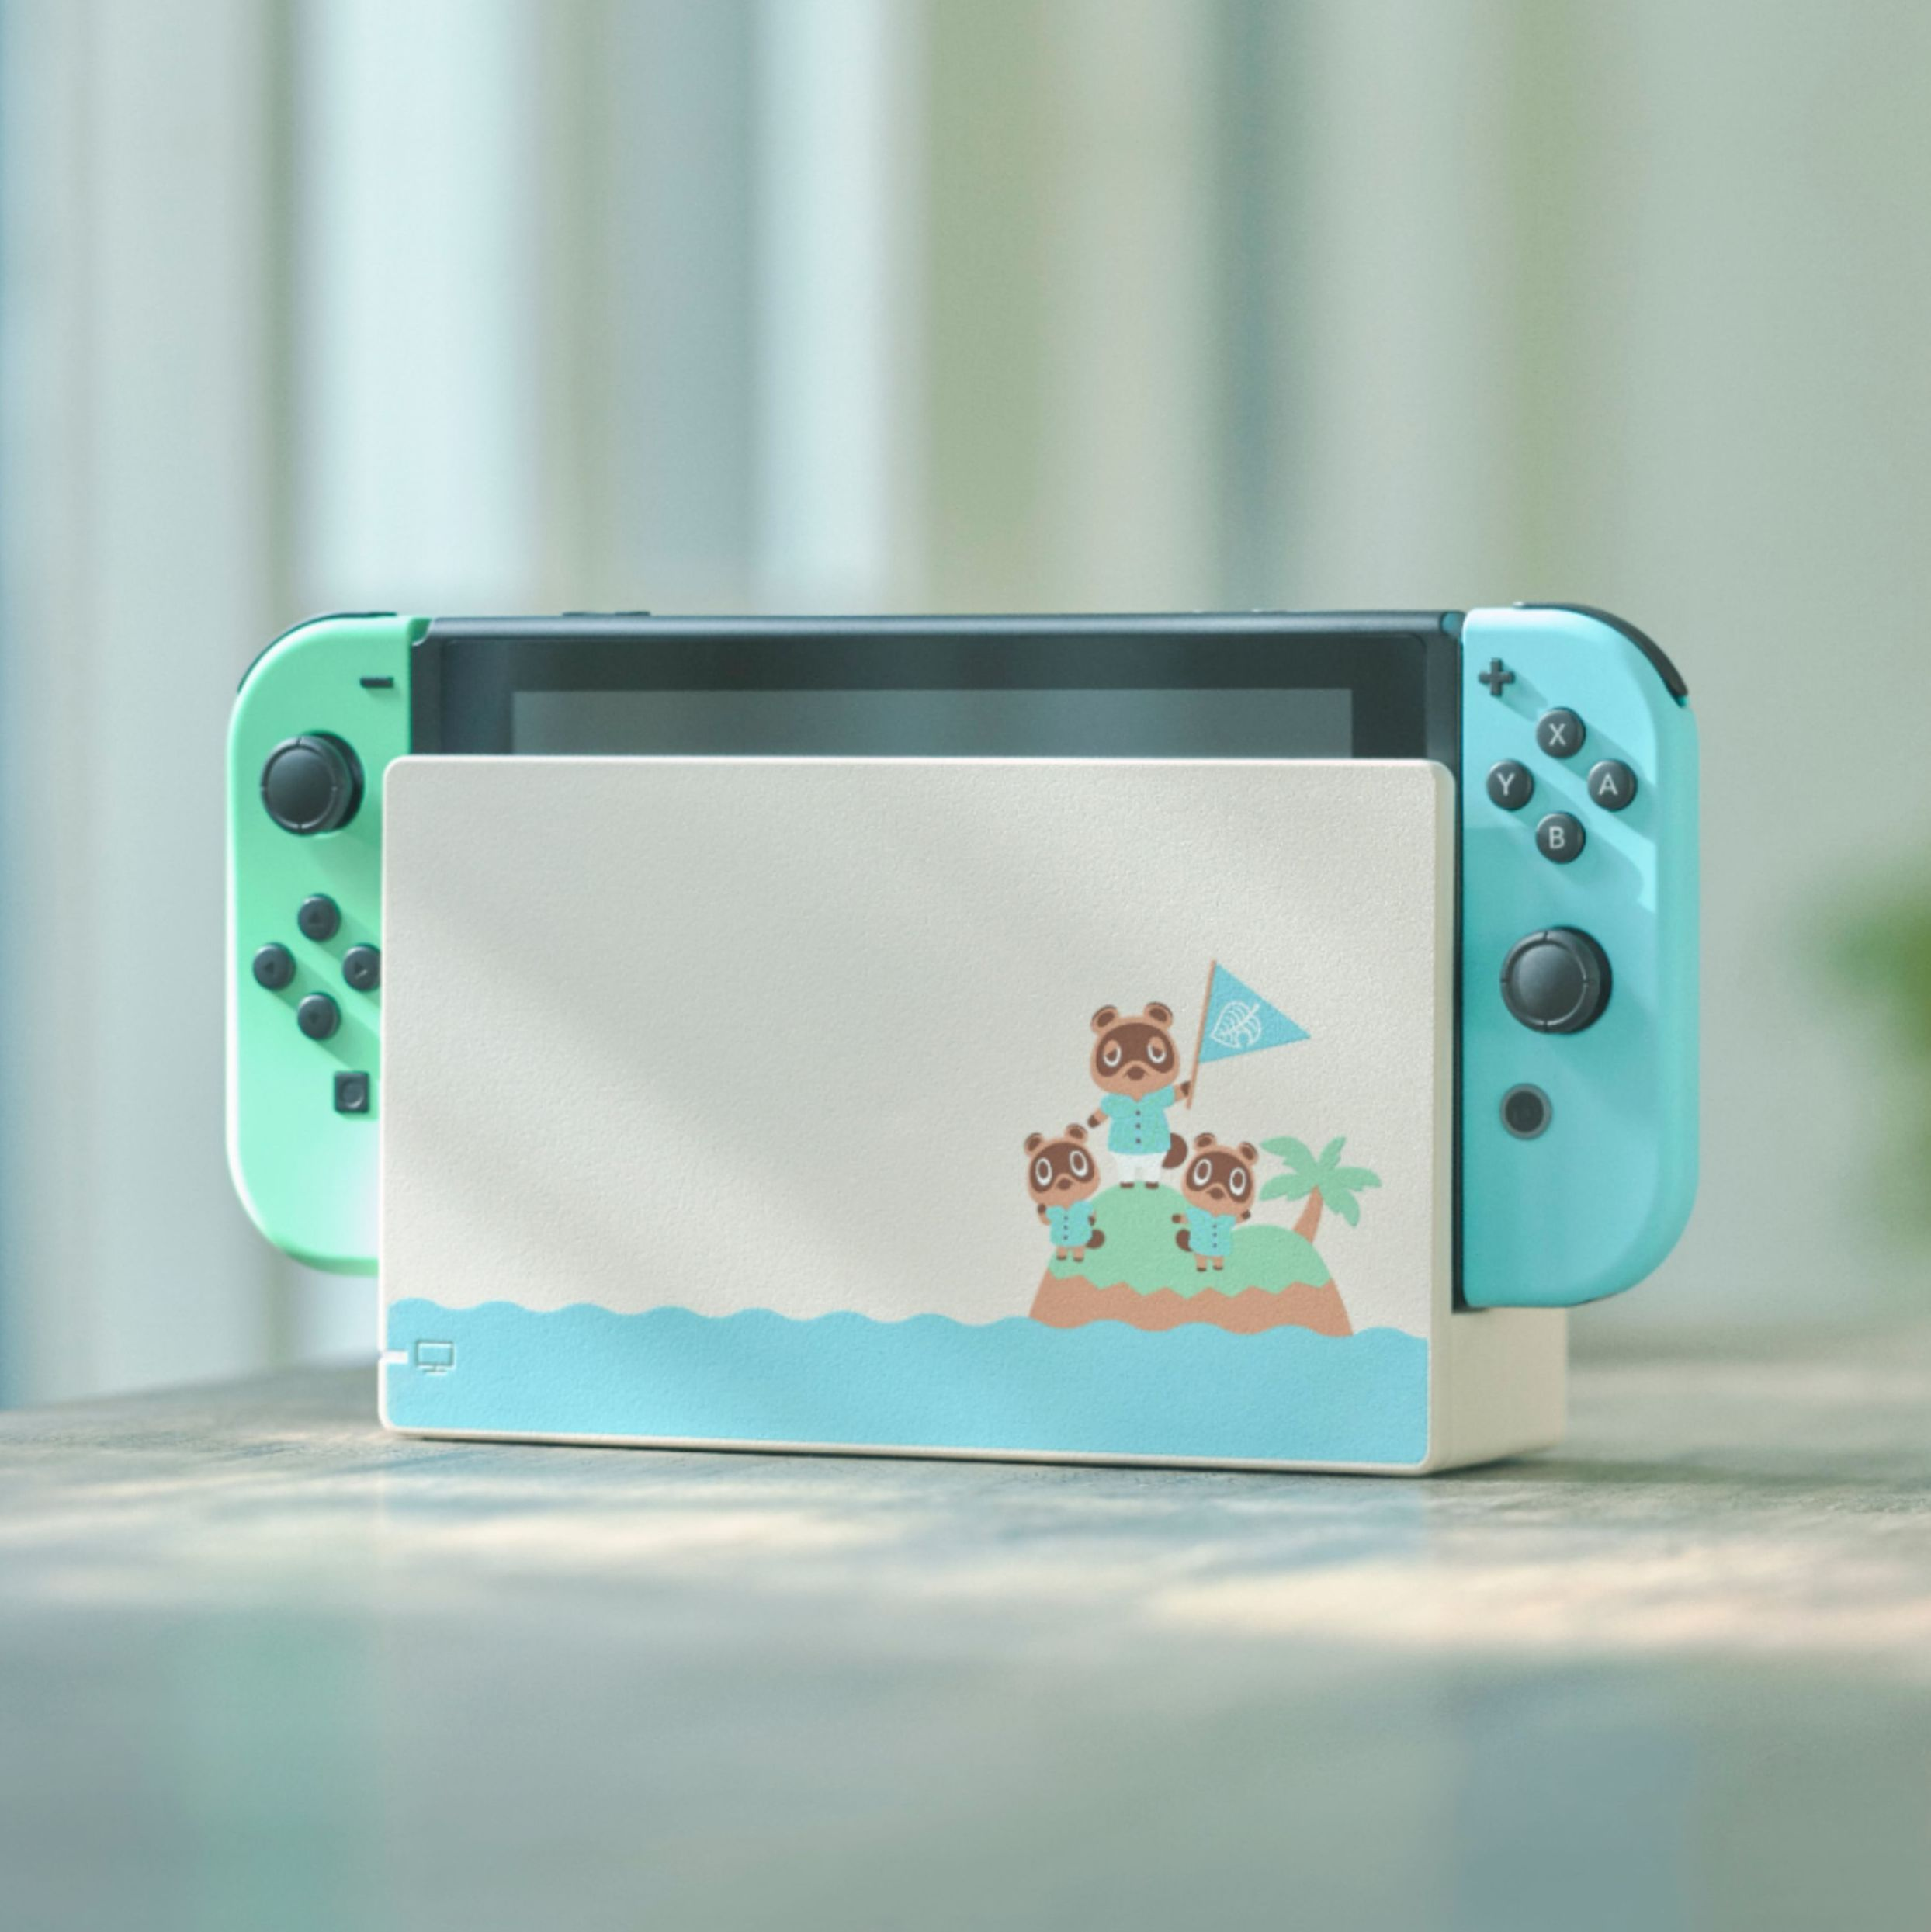 Where To Buy Nintendo Switch Consoles In Stock For Holiday 2021 At the time of writing no uk retailer has any nintendo switch stock. where to buy nintendo switch consoles